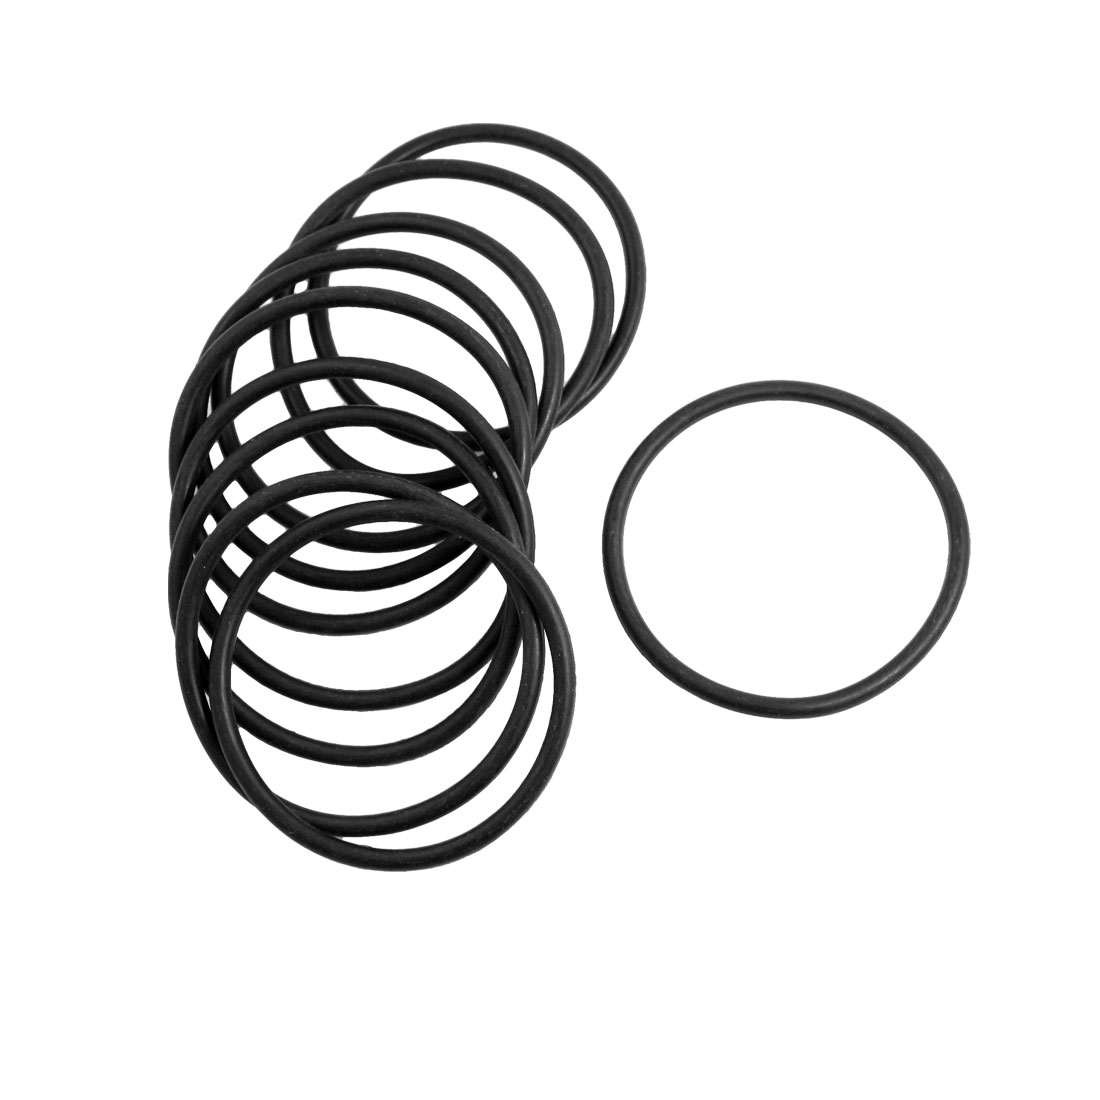 10 Pcs 3mm x 52mm Rubber Sealing Oil Filter O Rings Gasket Black